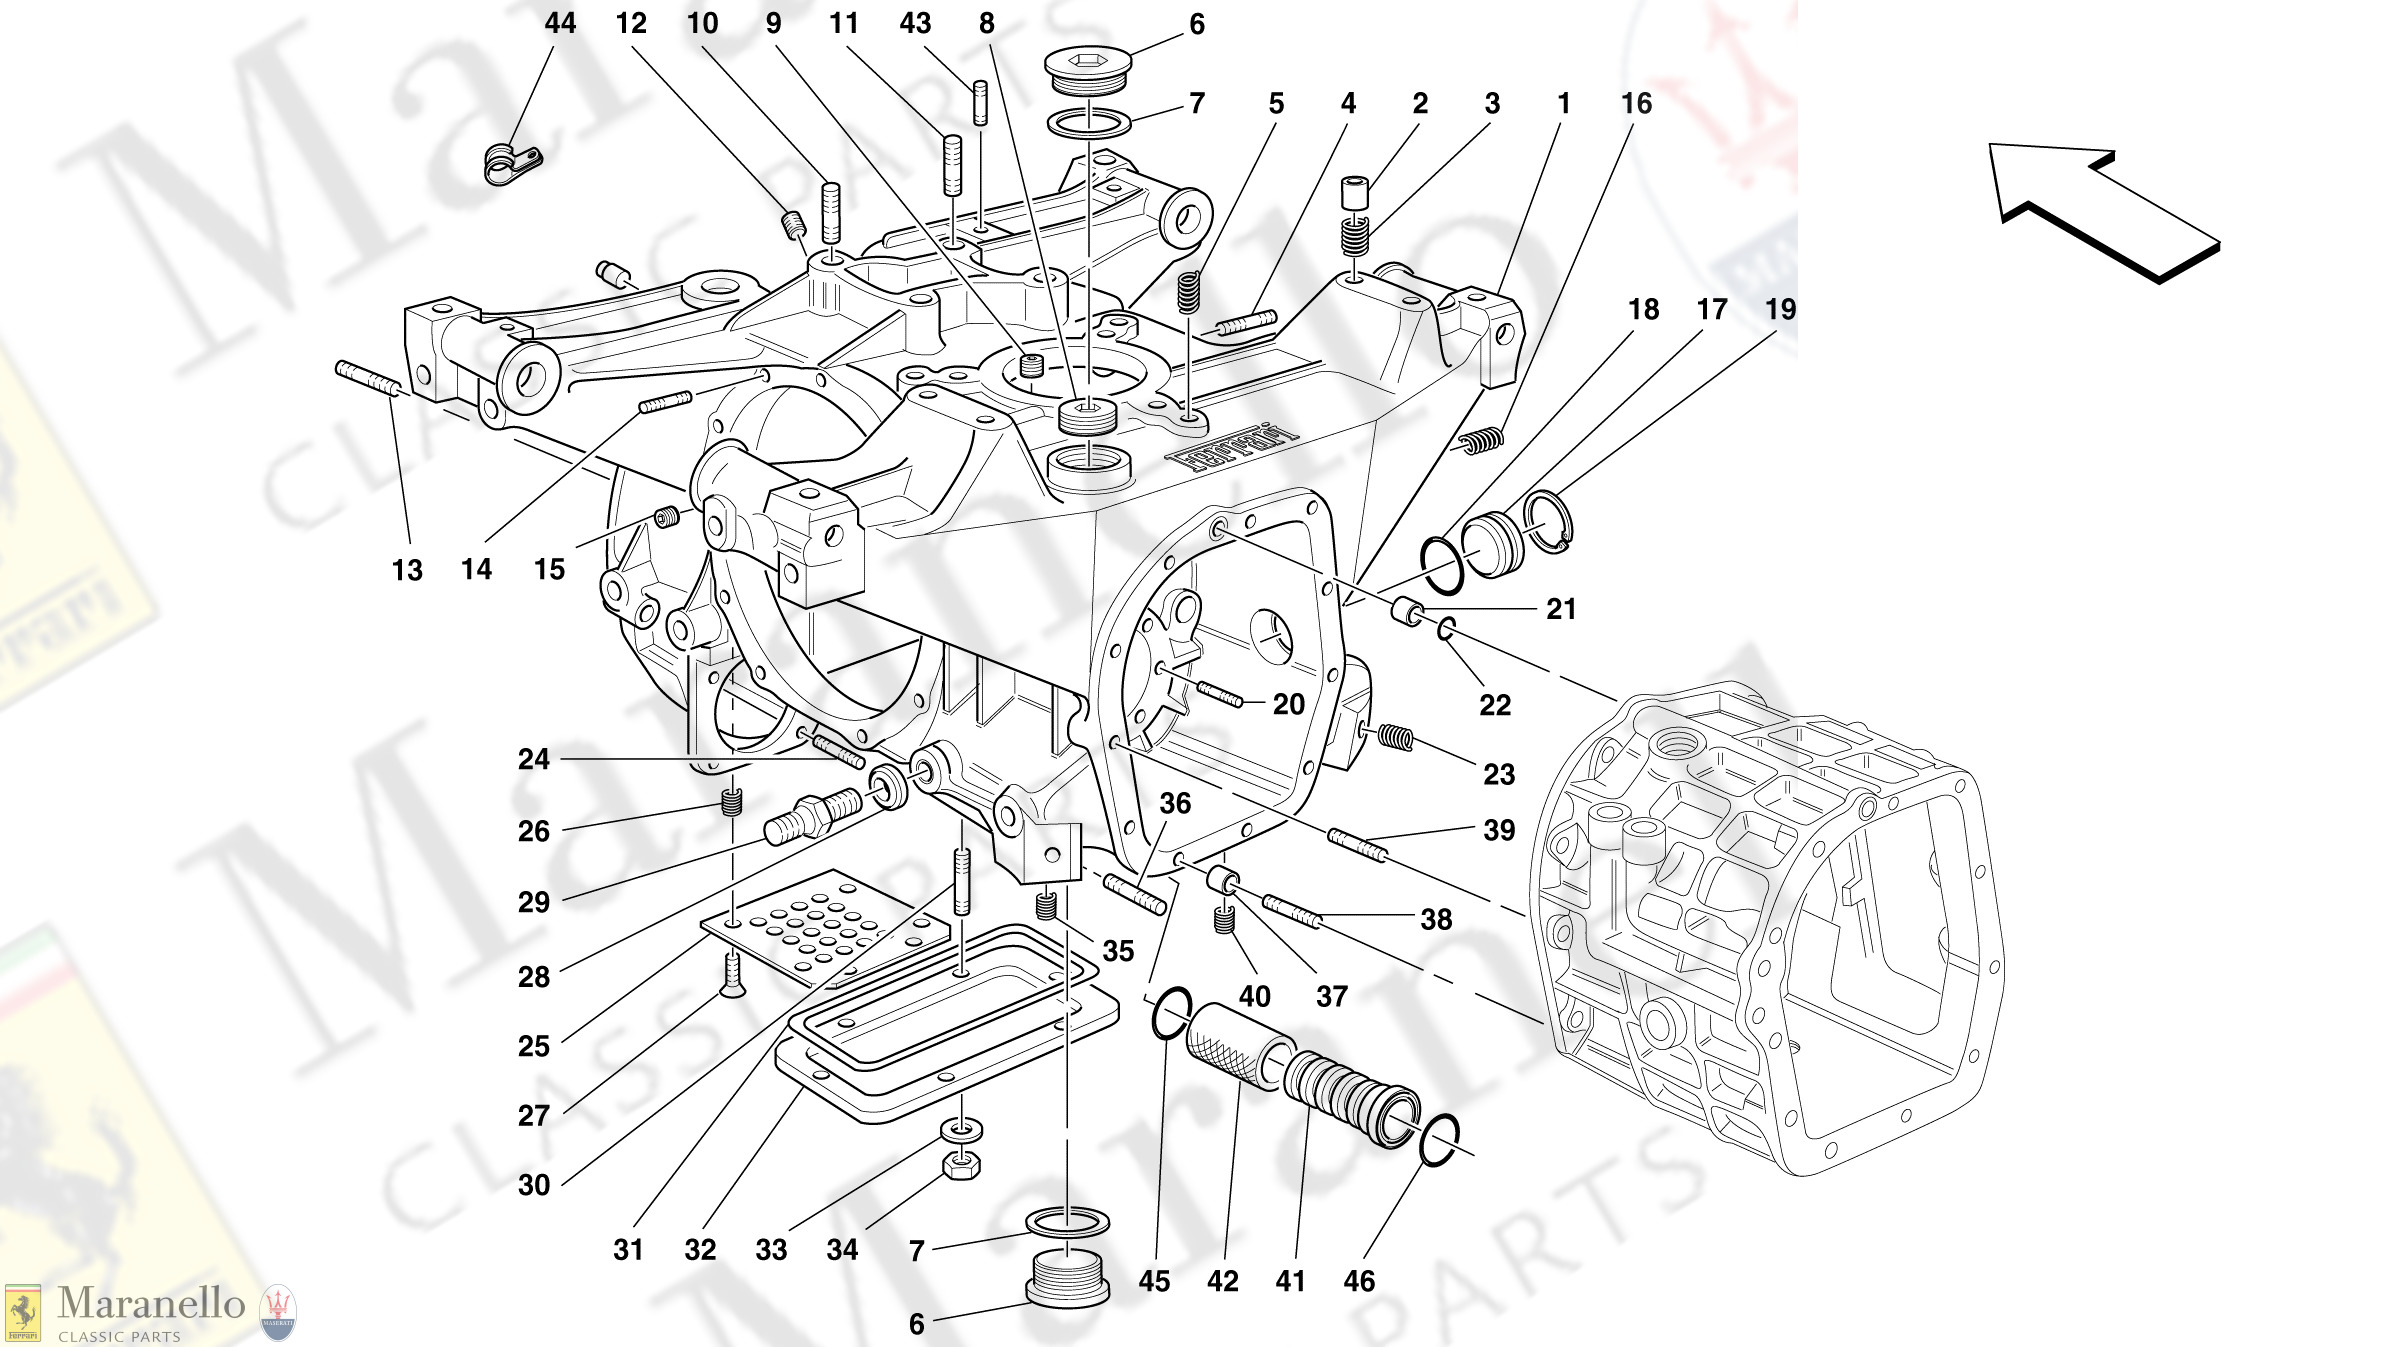 028 - Gearboxes/Differential Housing